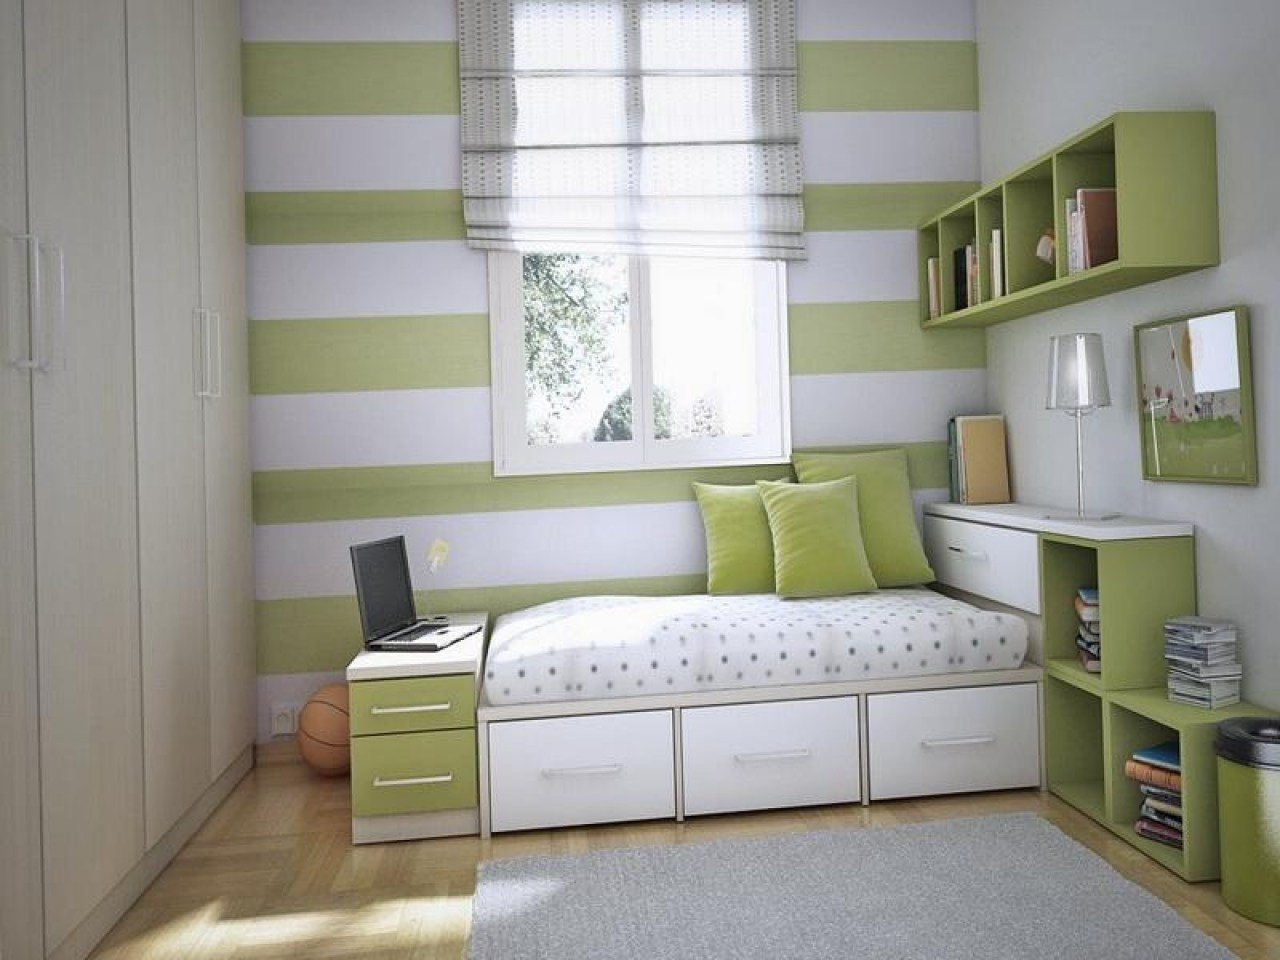 Best Bed Solutions For Small Bedrooms Bedroom Storage Ideas With Pictures